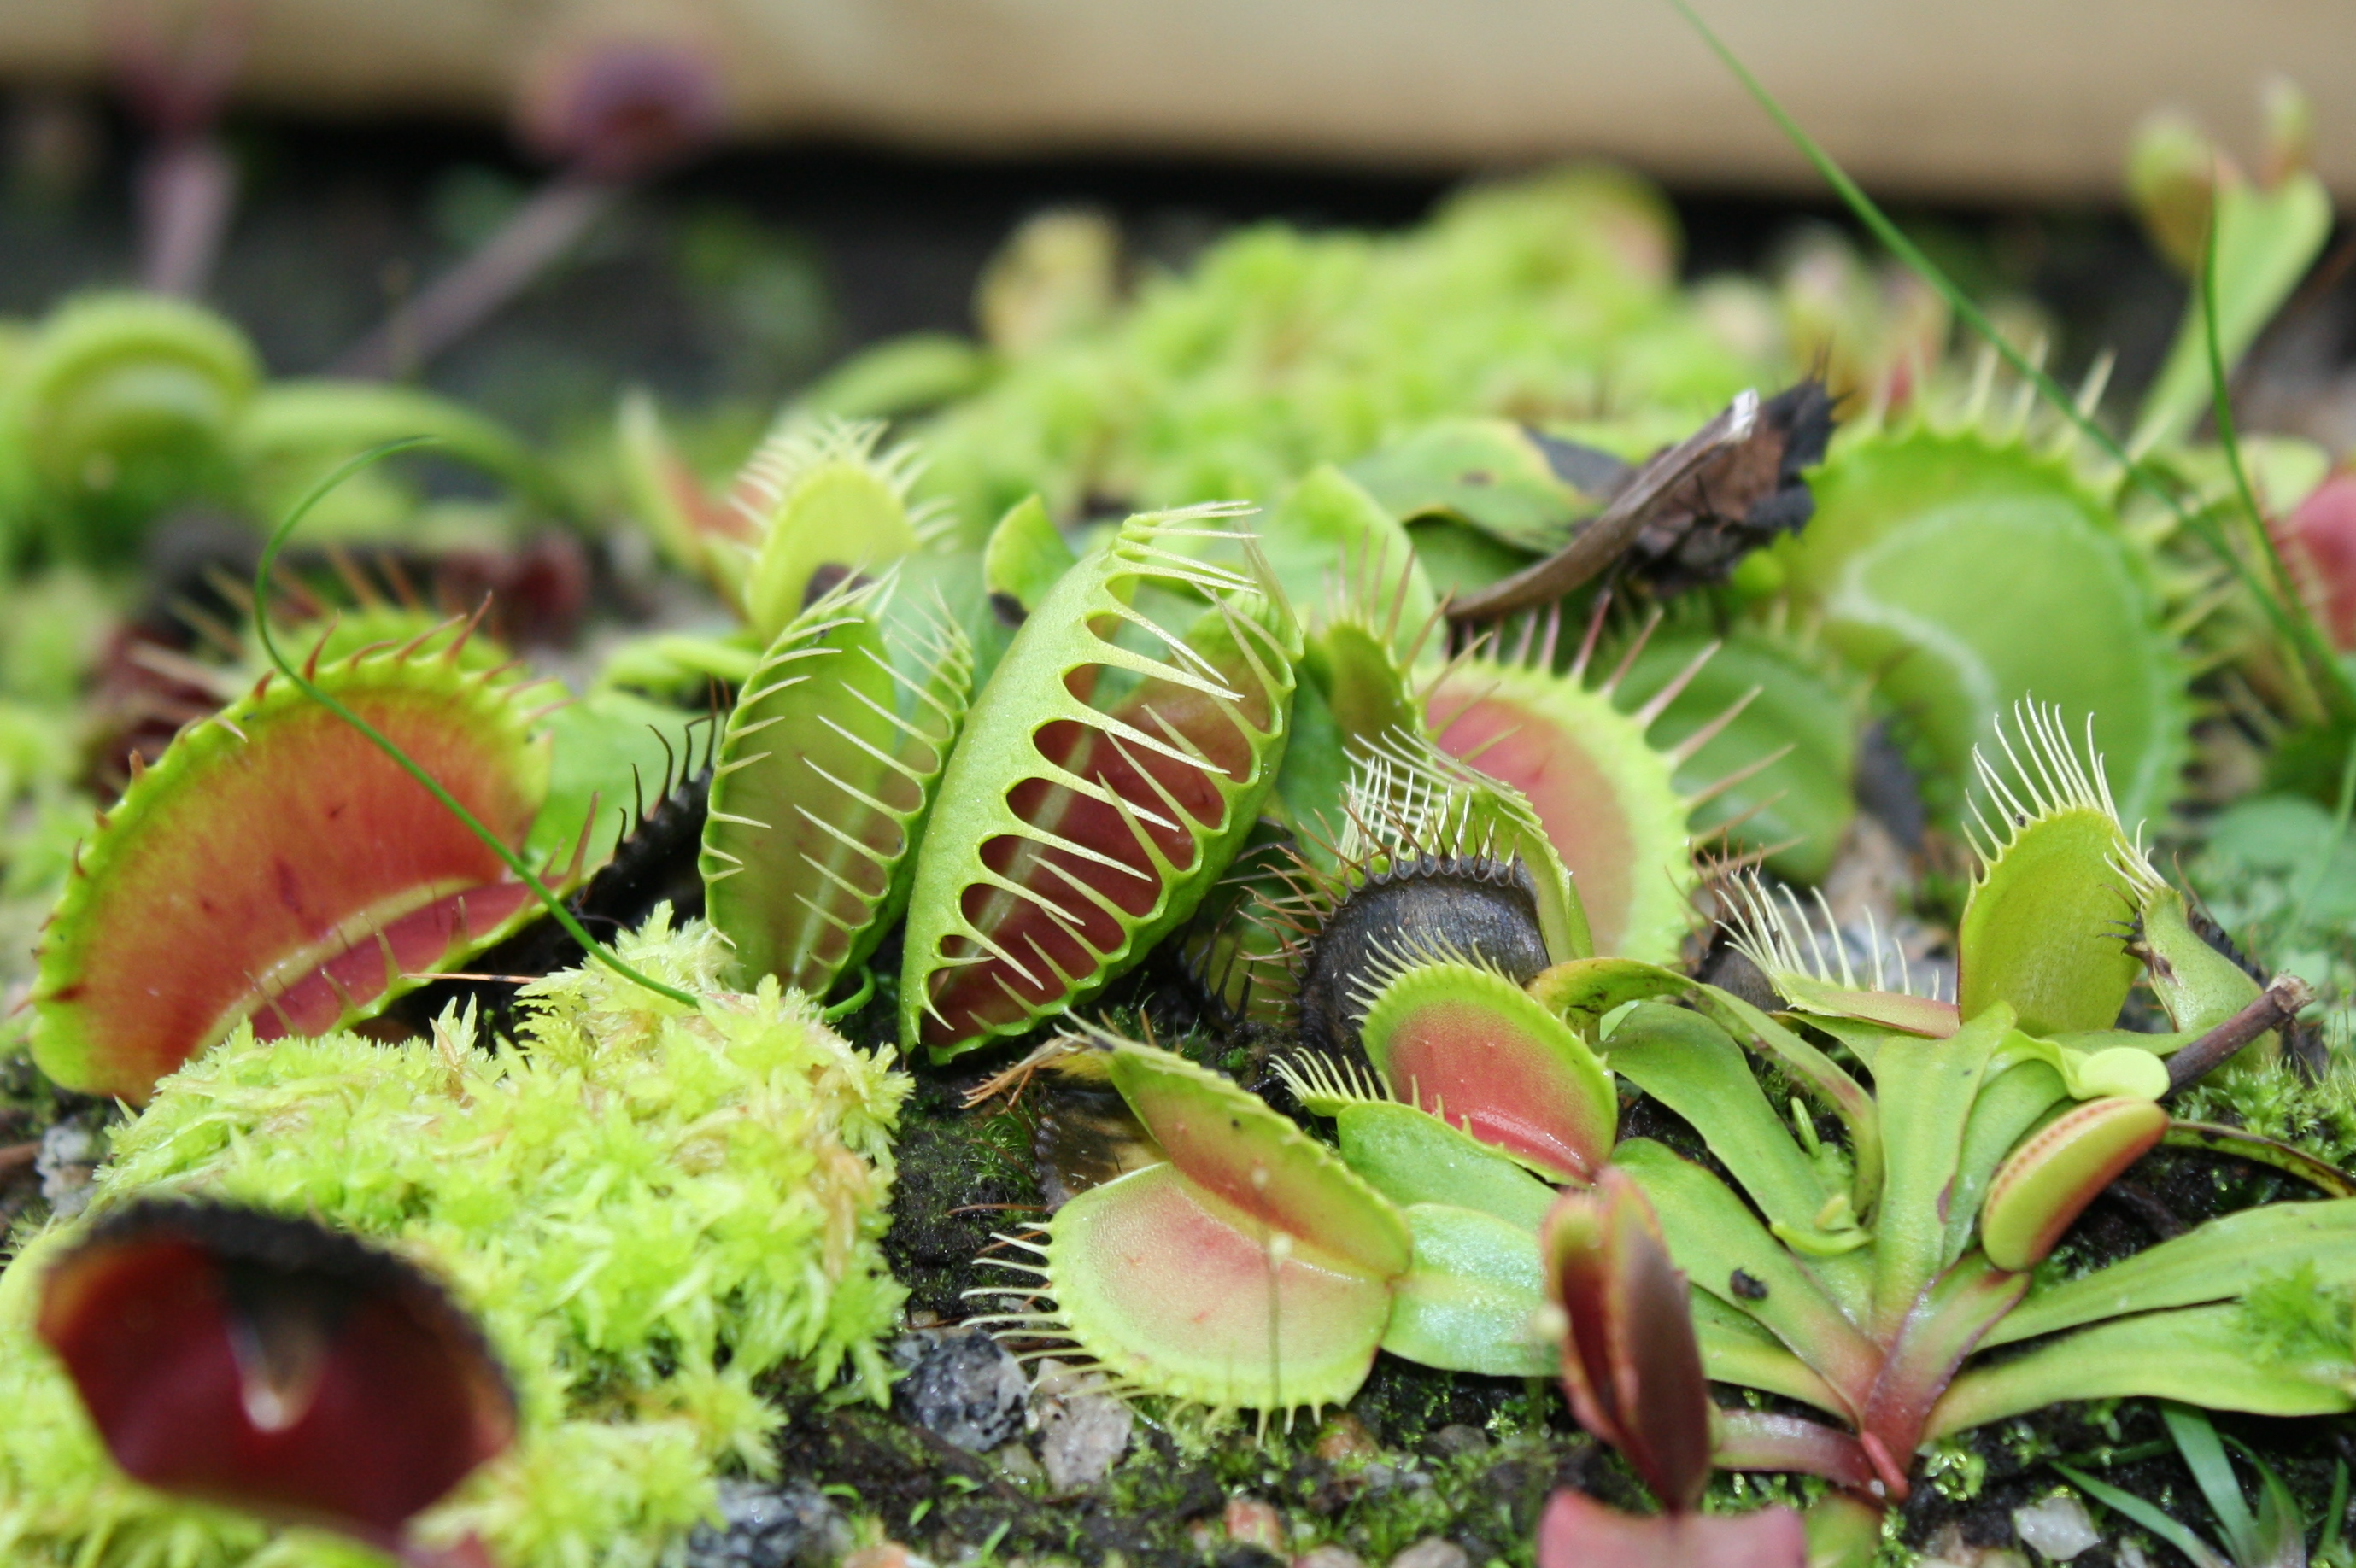 venus fly trap Venus flytrap crafts and learning activities for children these crafts and activities are great for homeschools.